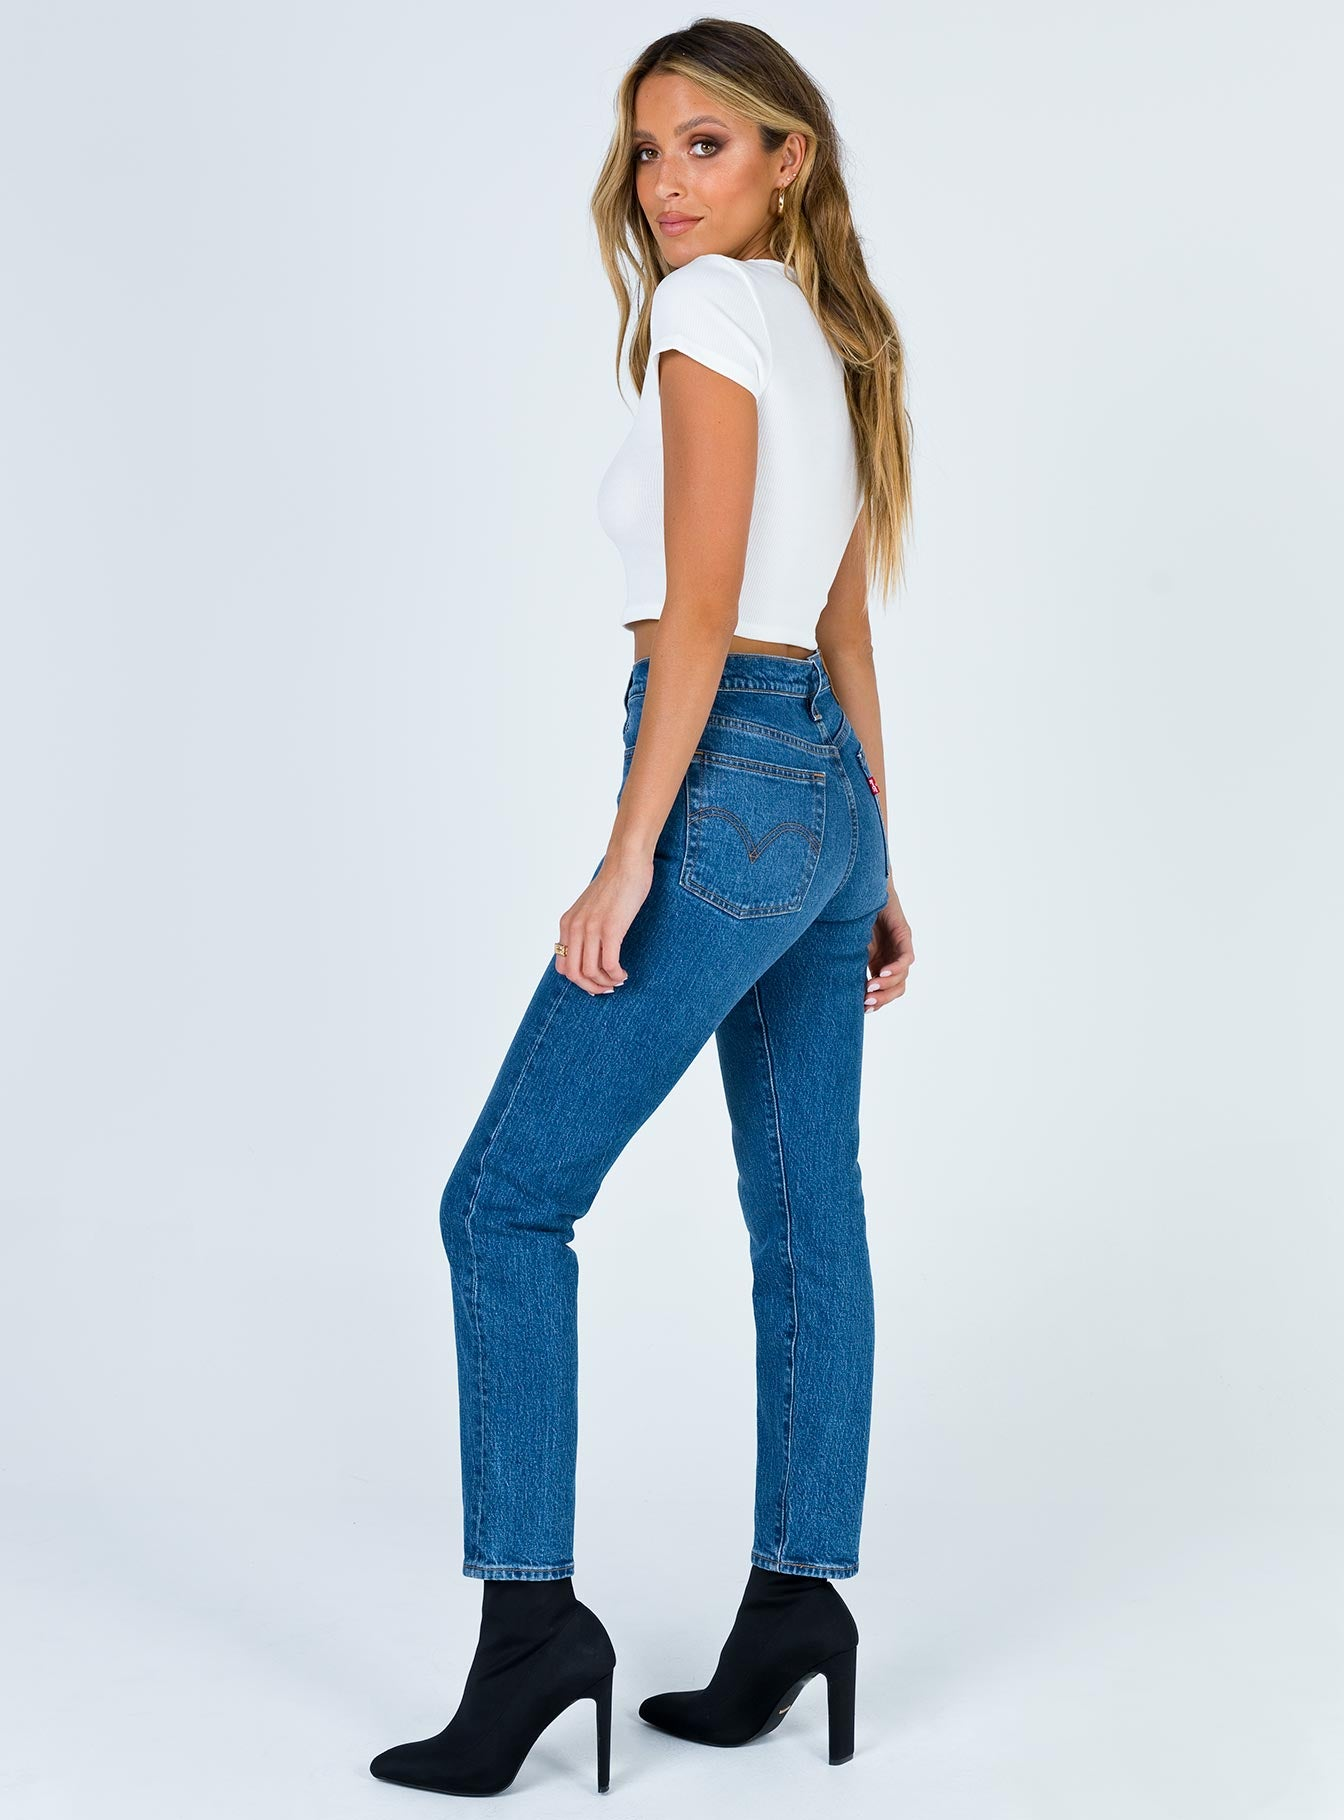 Levi's Wedgie Icon Fit Charleston Moves Jeans